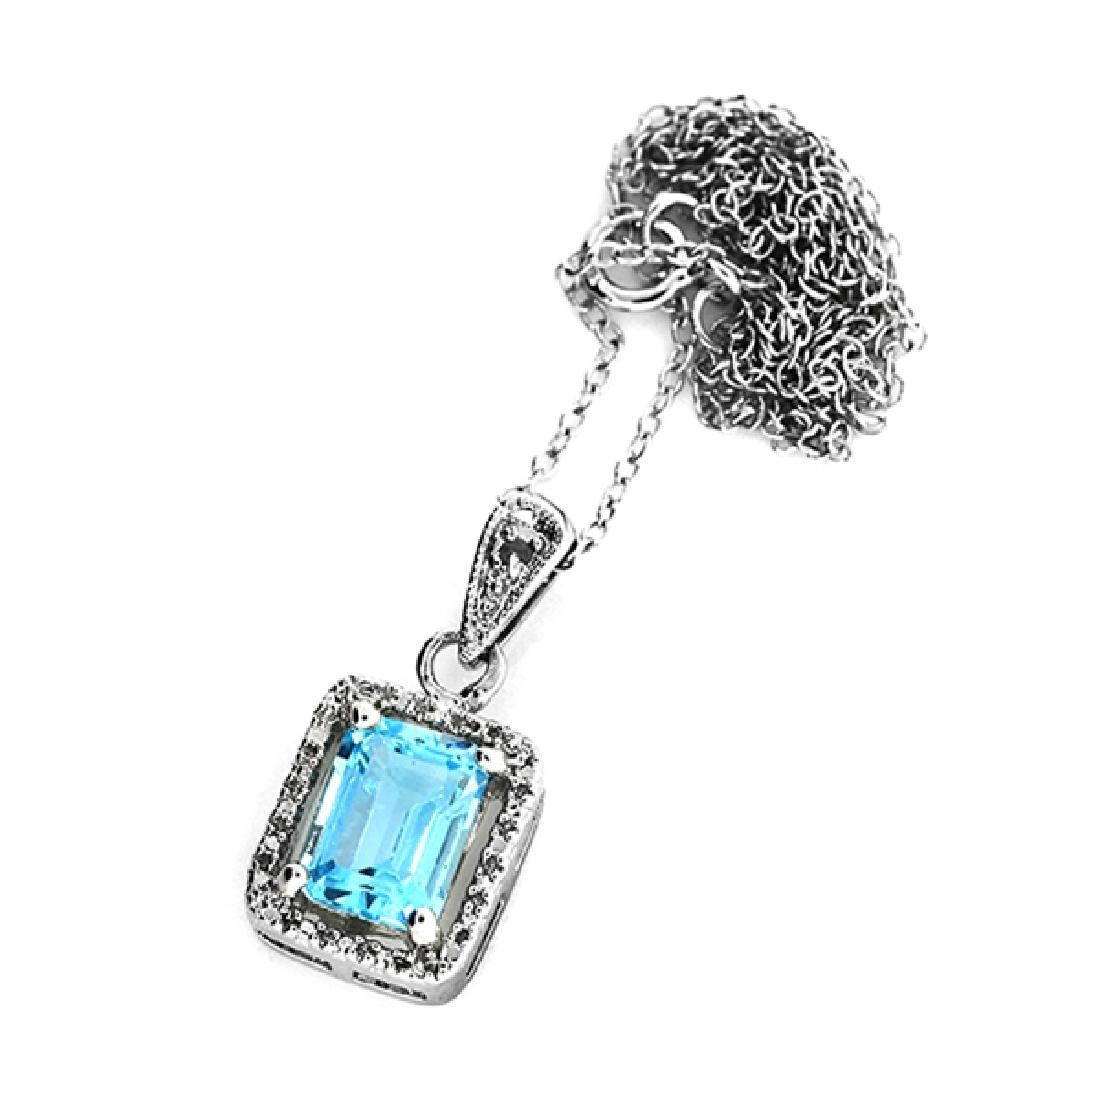 Blue Topaz and Sterling Silver Earring and Pendant Set